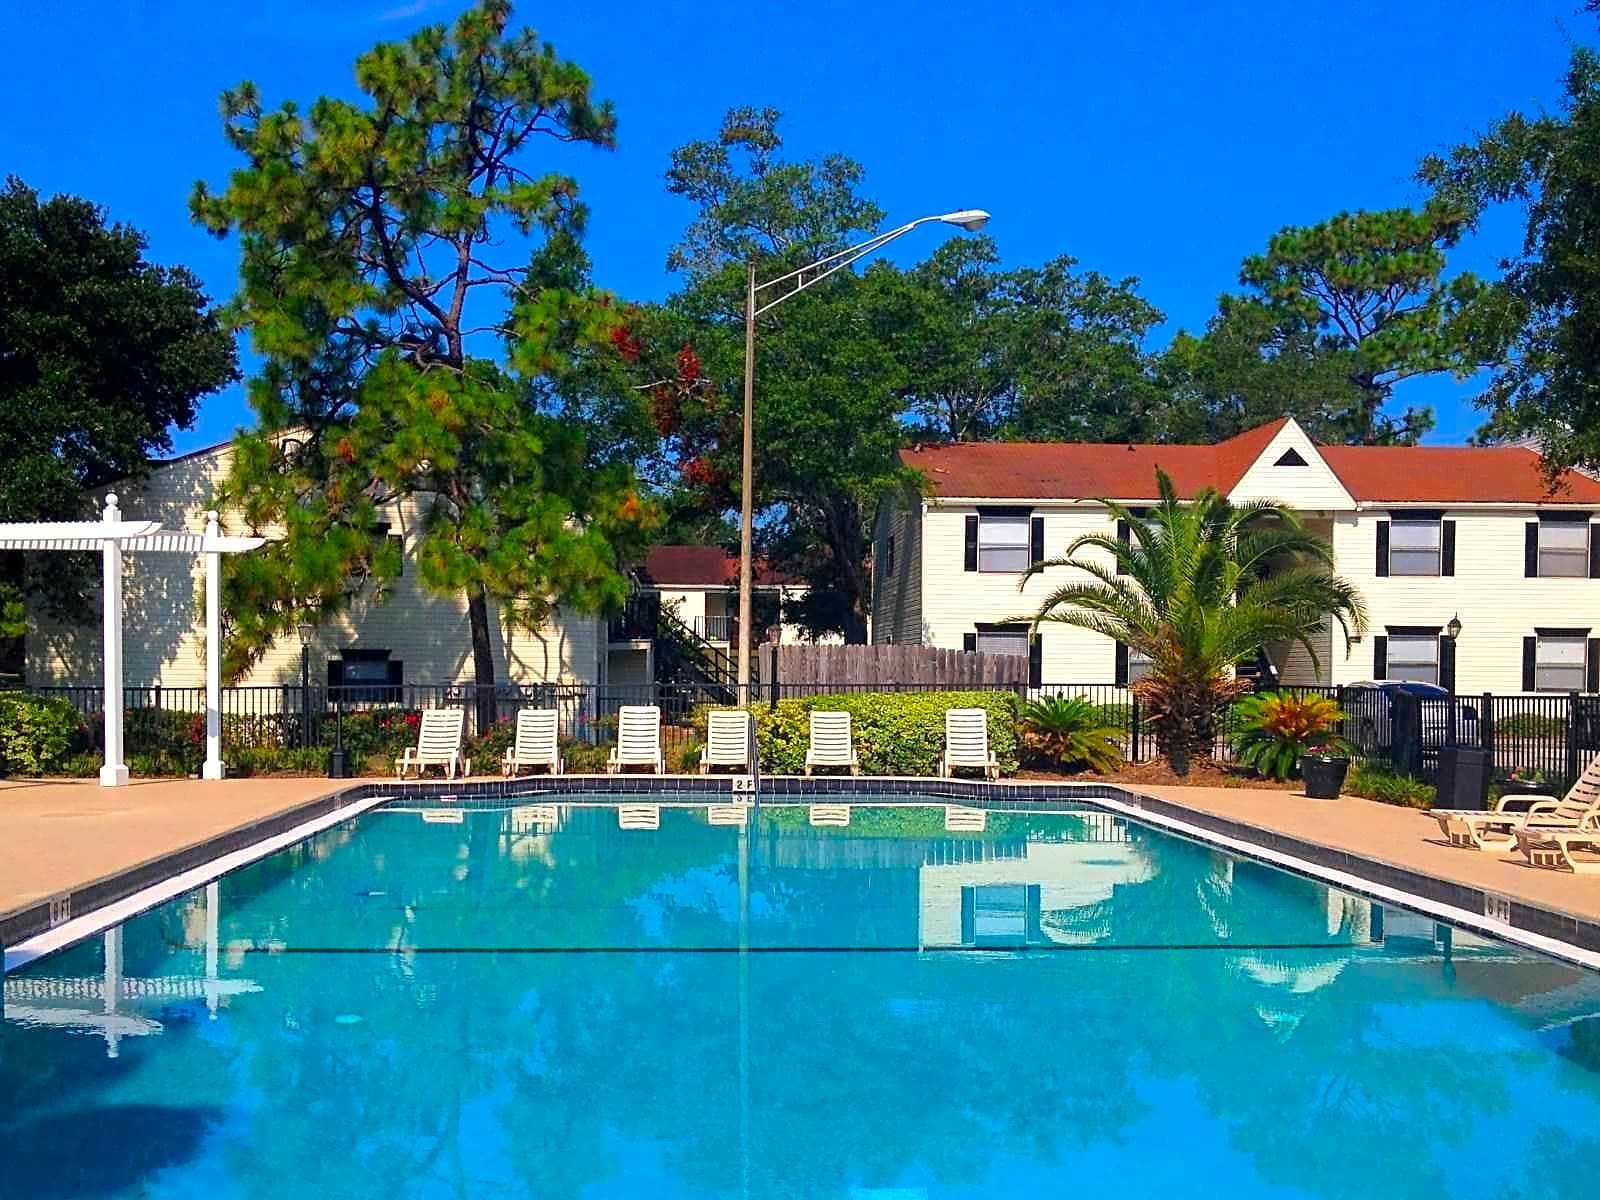 Photo: Jacksonville Apartment for Rent - $1100.00 / month; 4 Bd & 2 Ba